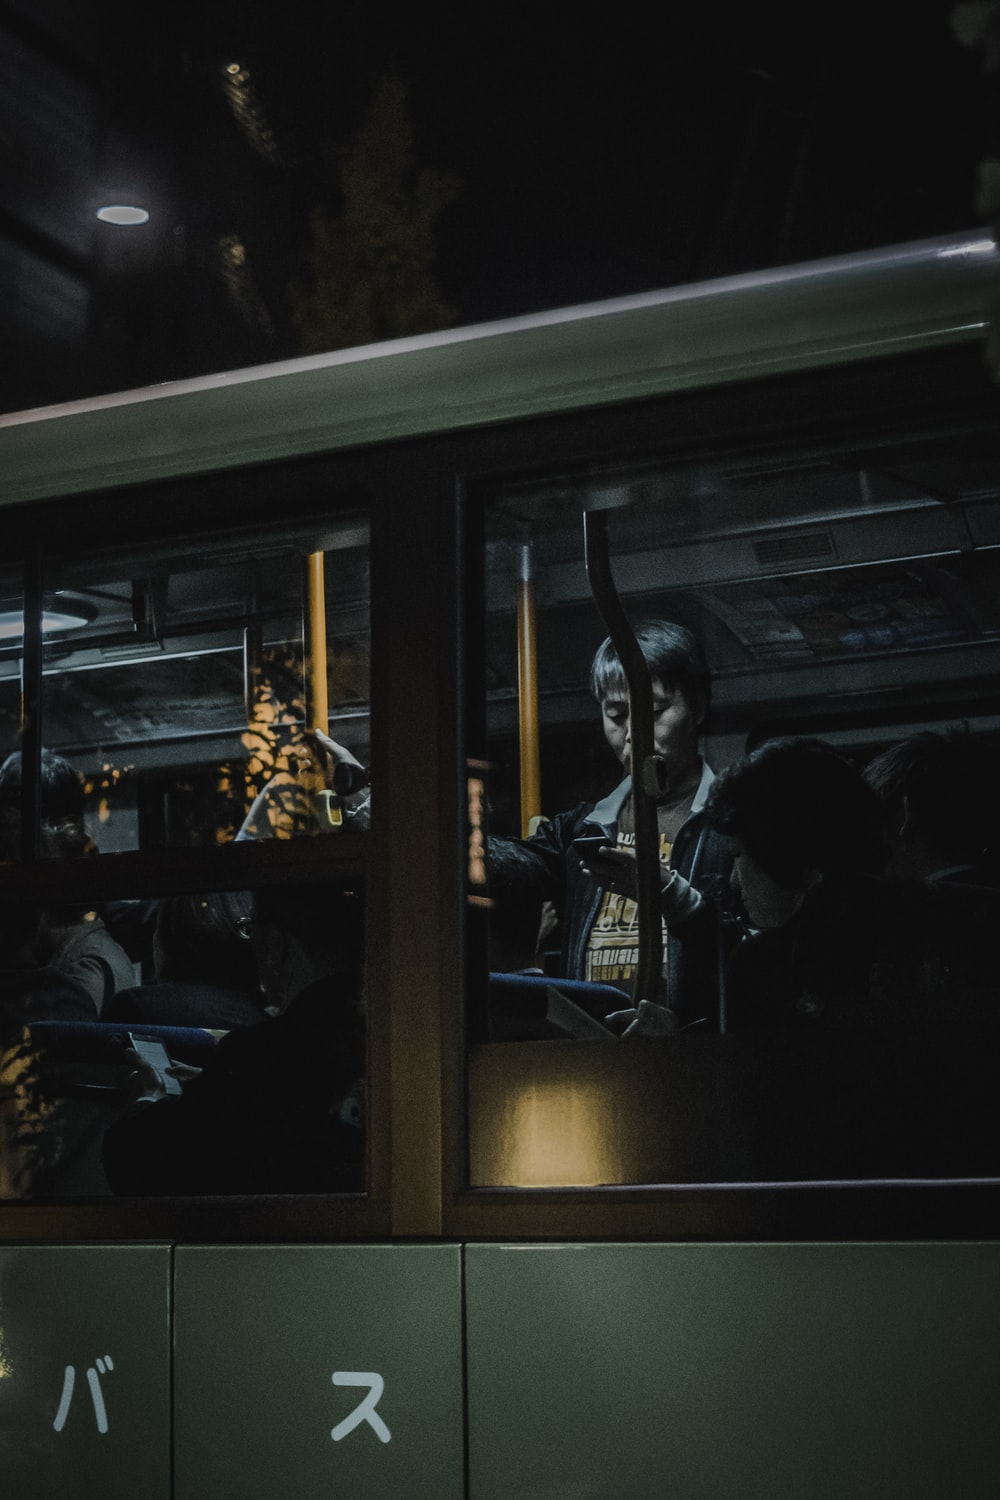 person standing inside train while using smartphone in front of clear glass window